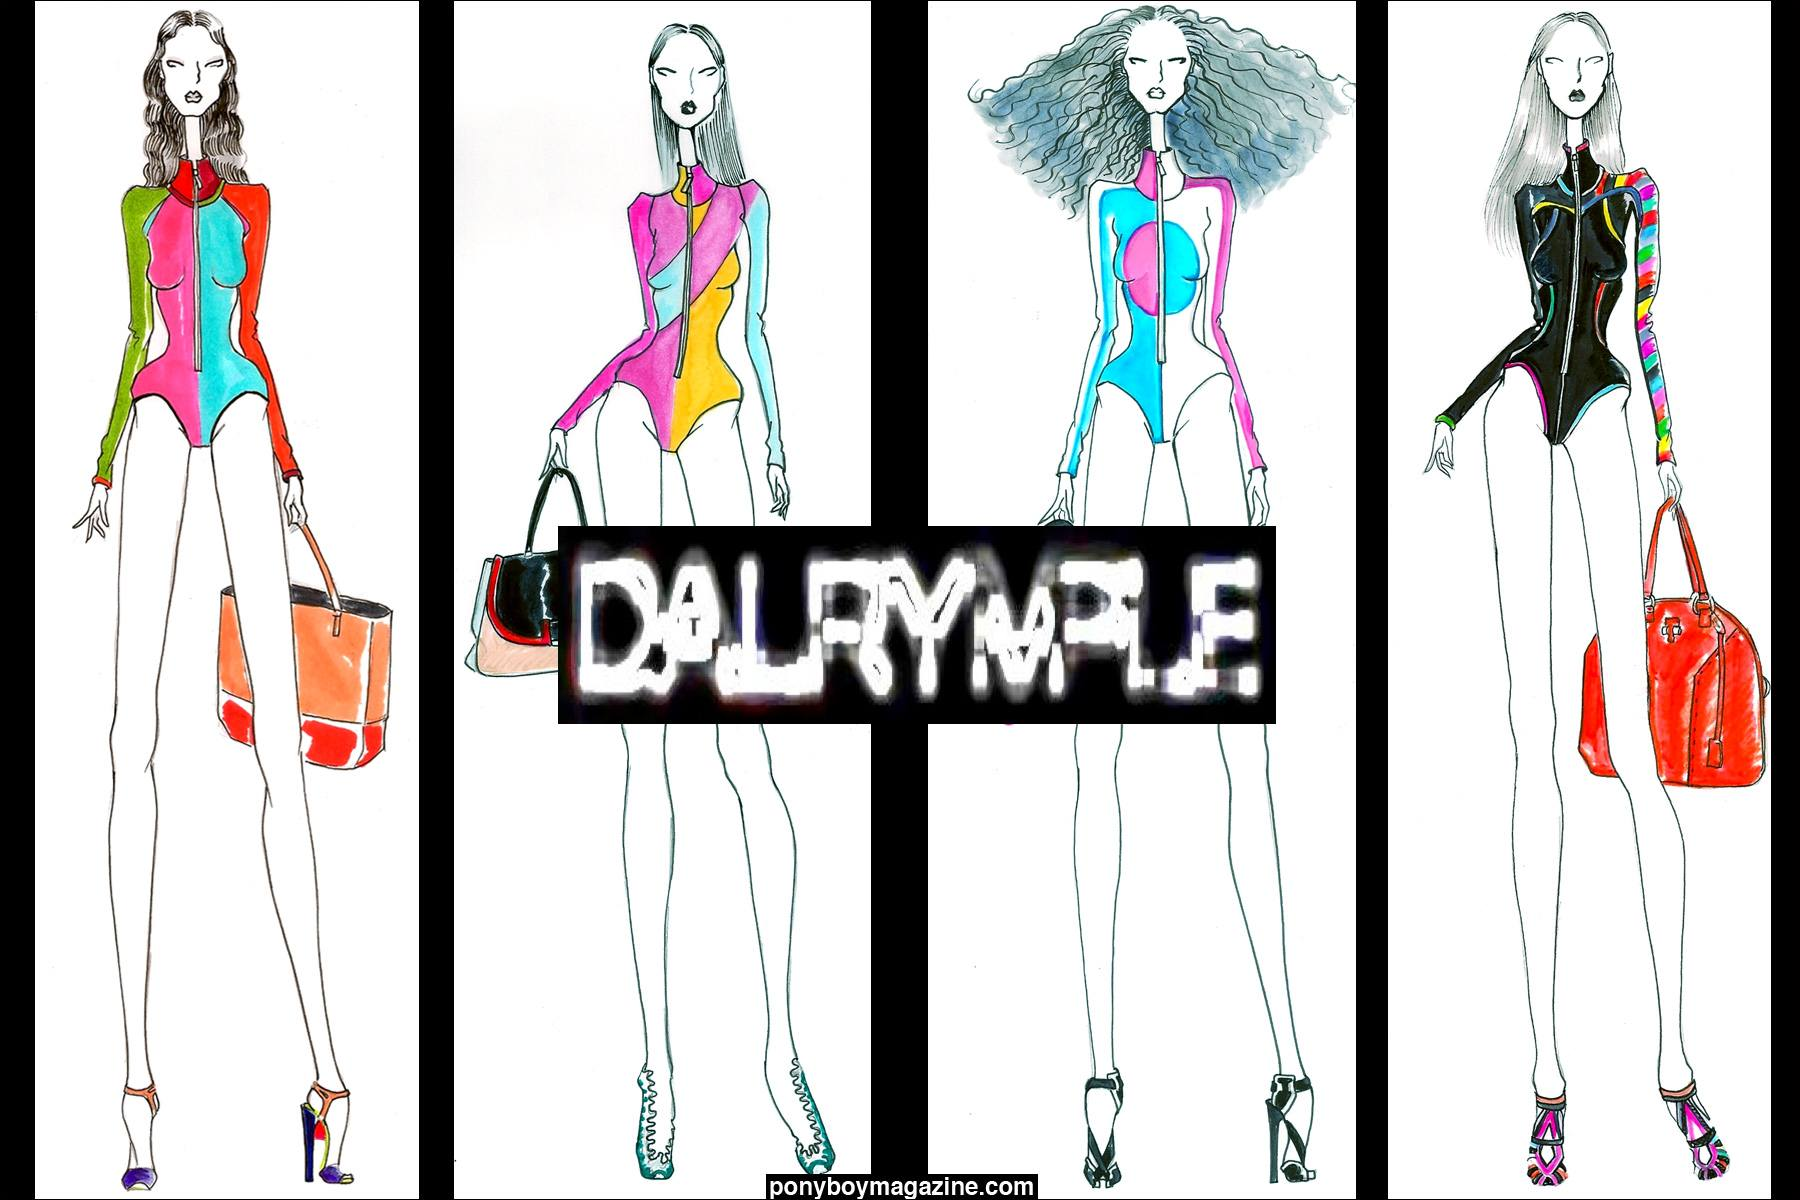 Sketches for David Dalrymple designs. Ponyboy Magazine.